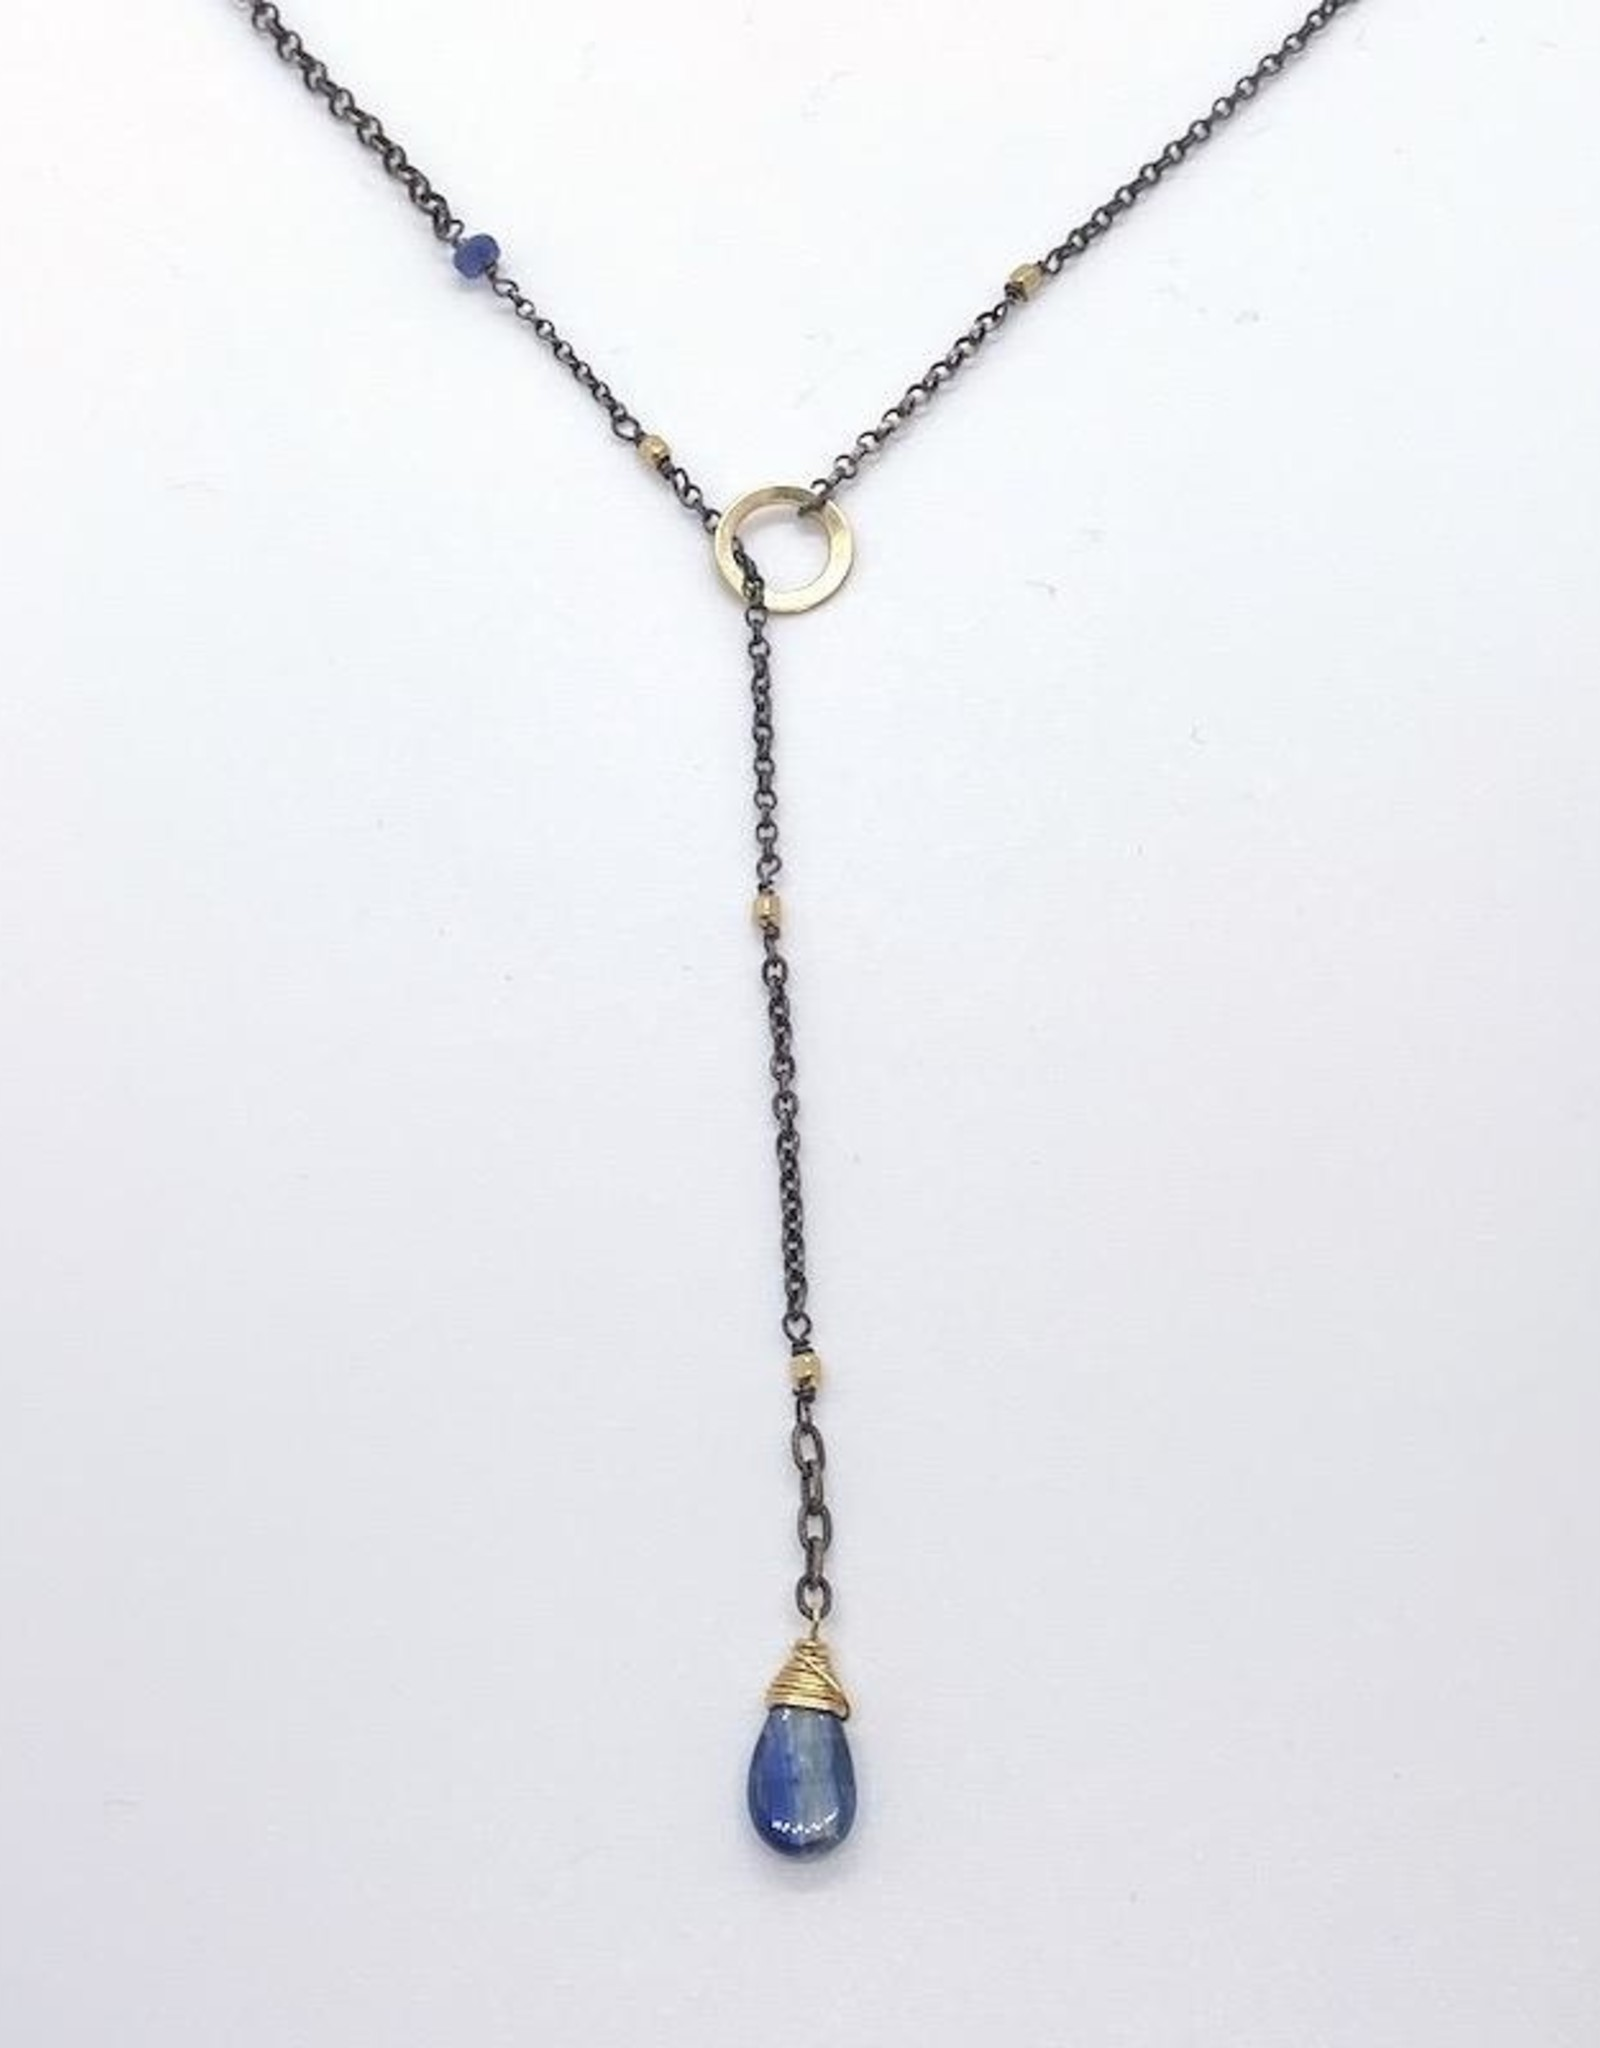 Handmade Silver Necklace with lariat: kyanite briolette, oxidized chain, 14 k g.f. faceted cubes/ring, kyanite